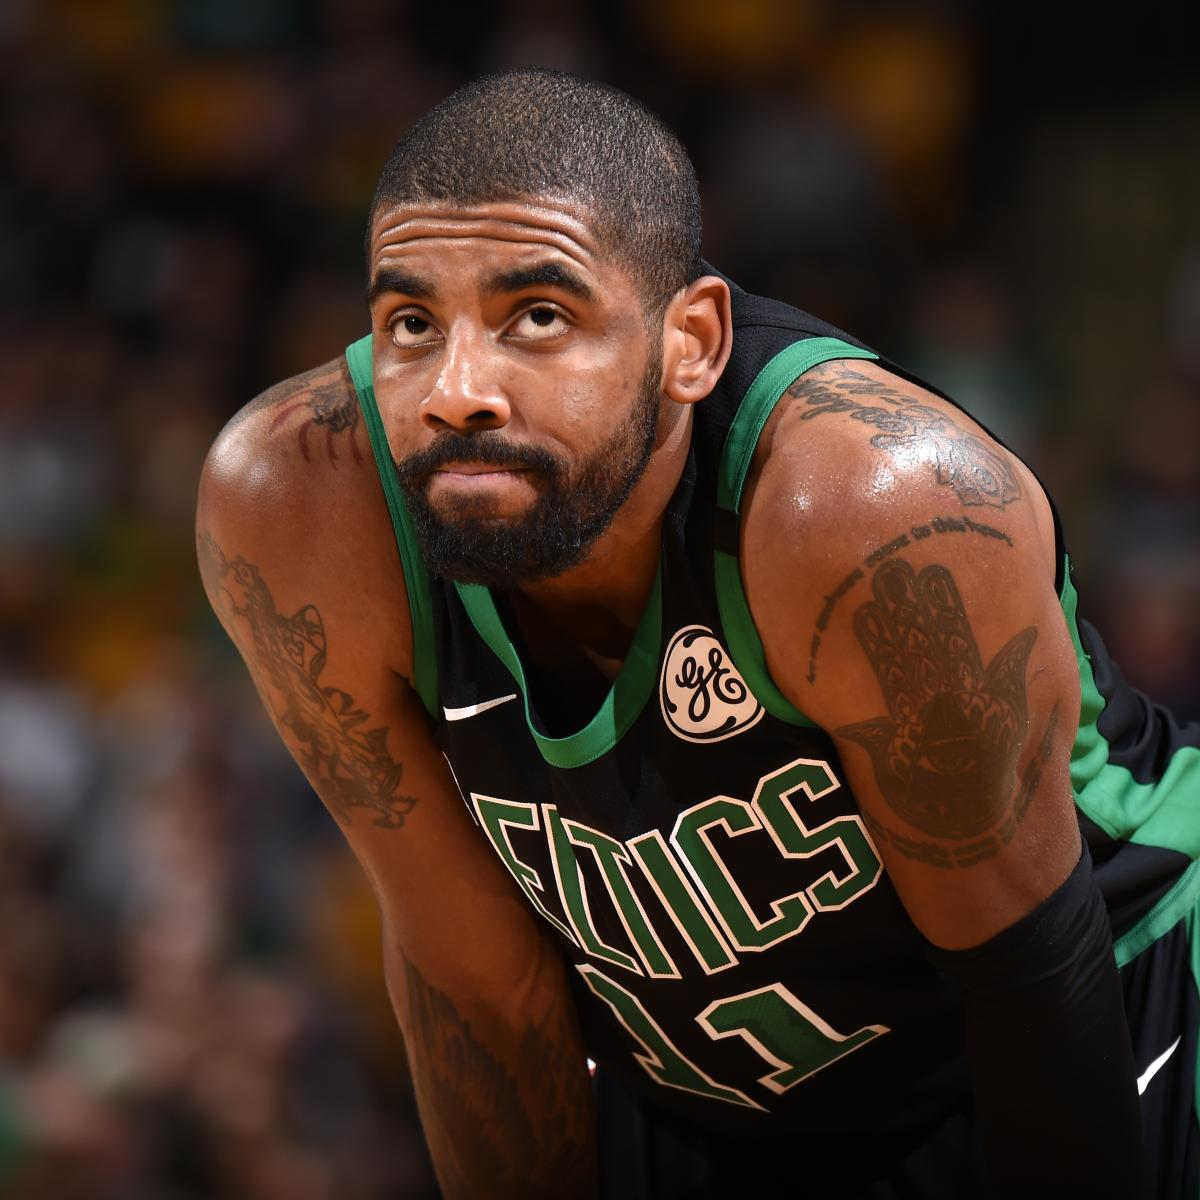 Nba Picks Nuggets And Lakers Game 7 Odds And Betting: Boston Celtics Vs. Los Angeles Lakers: Odds, Analysis, NBA